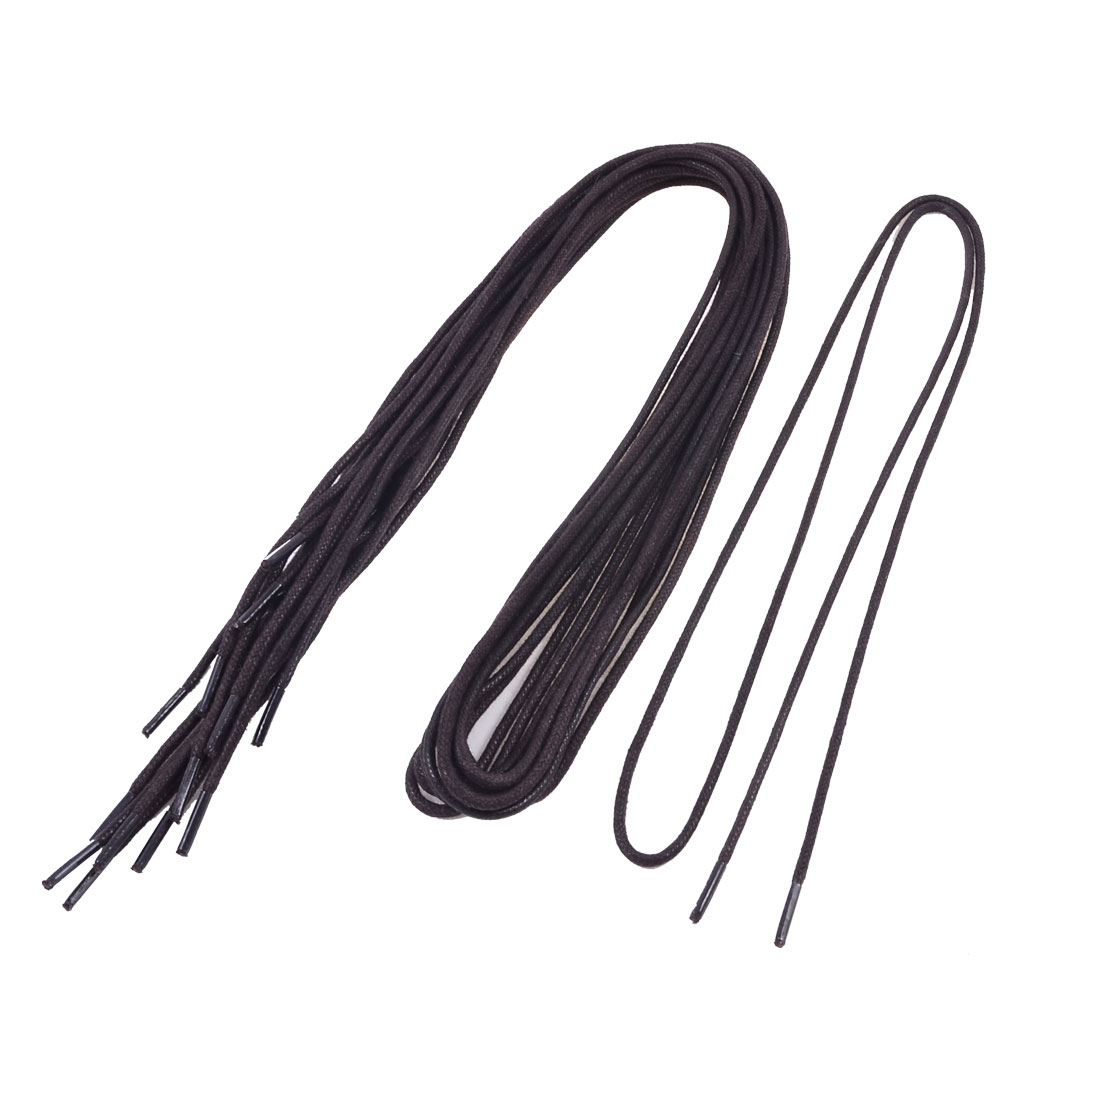 5 Pairs Plastic Tips Cord Shoelaces Coffee Color for Leather Shoes